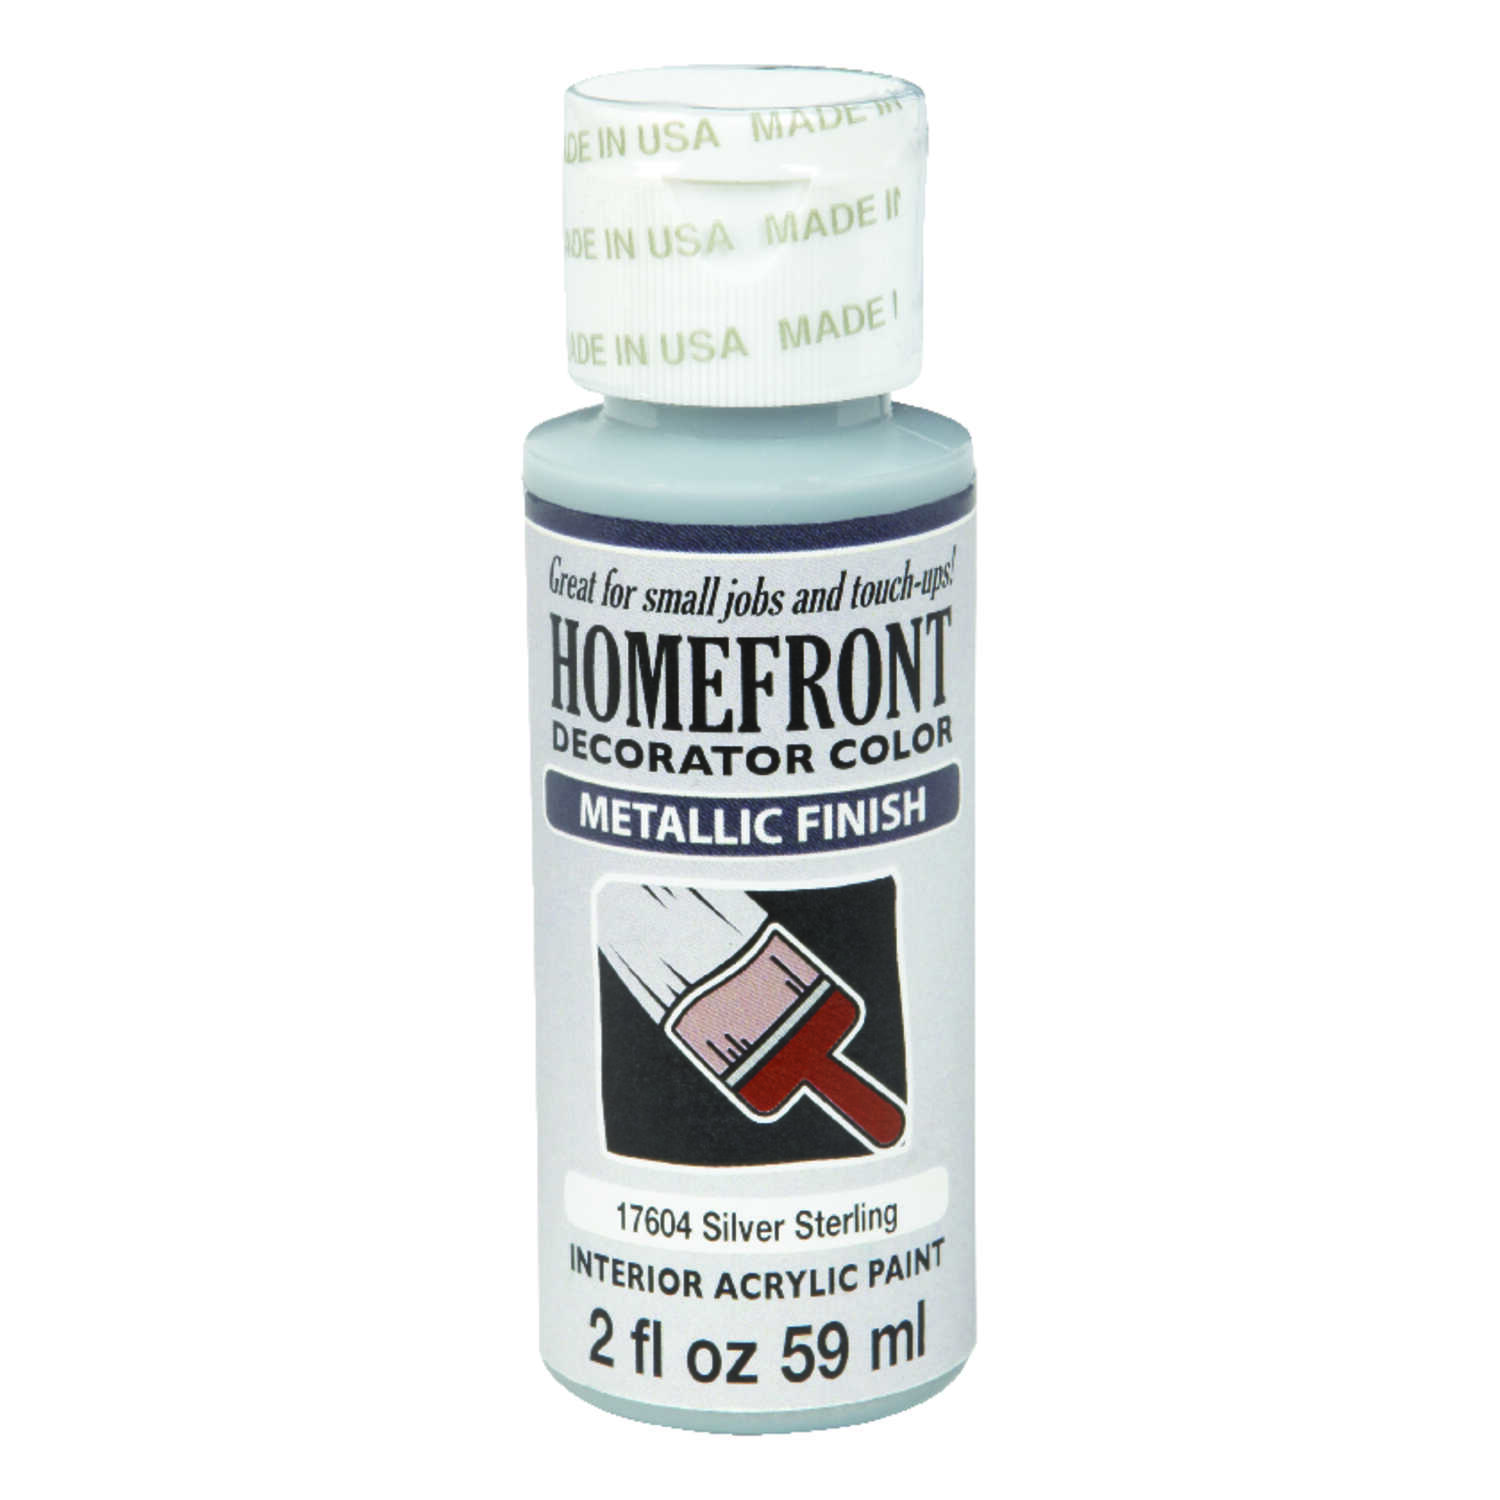 Homefront  Decorator Color  Metallic  Silver Sterling  Hobby Paint  2 oz.